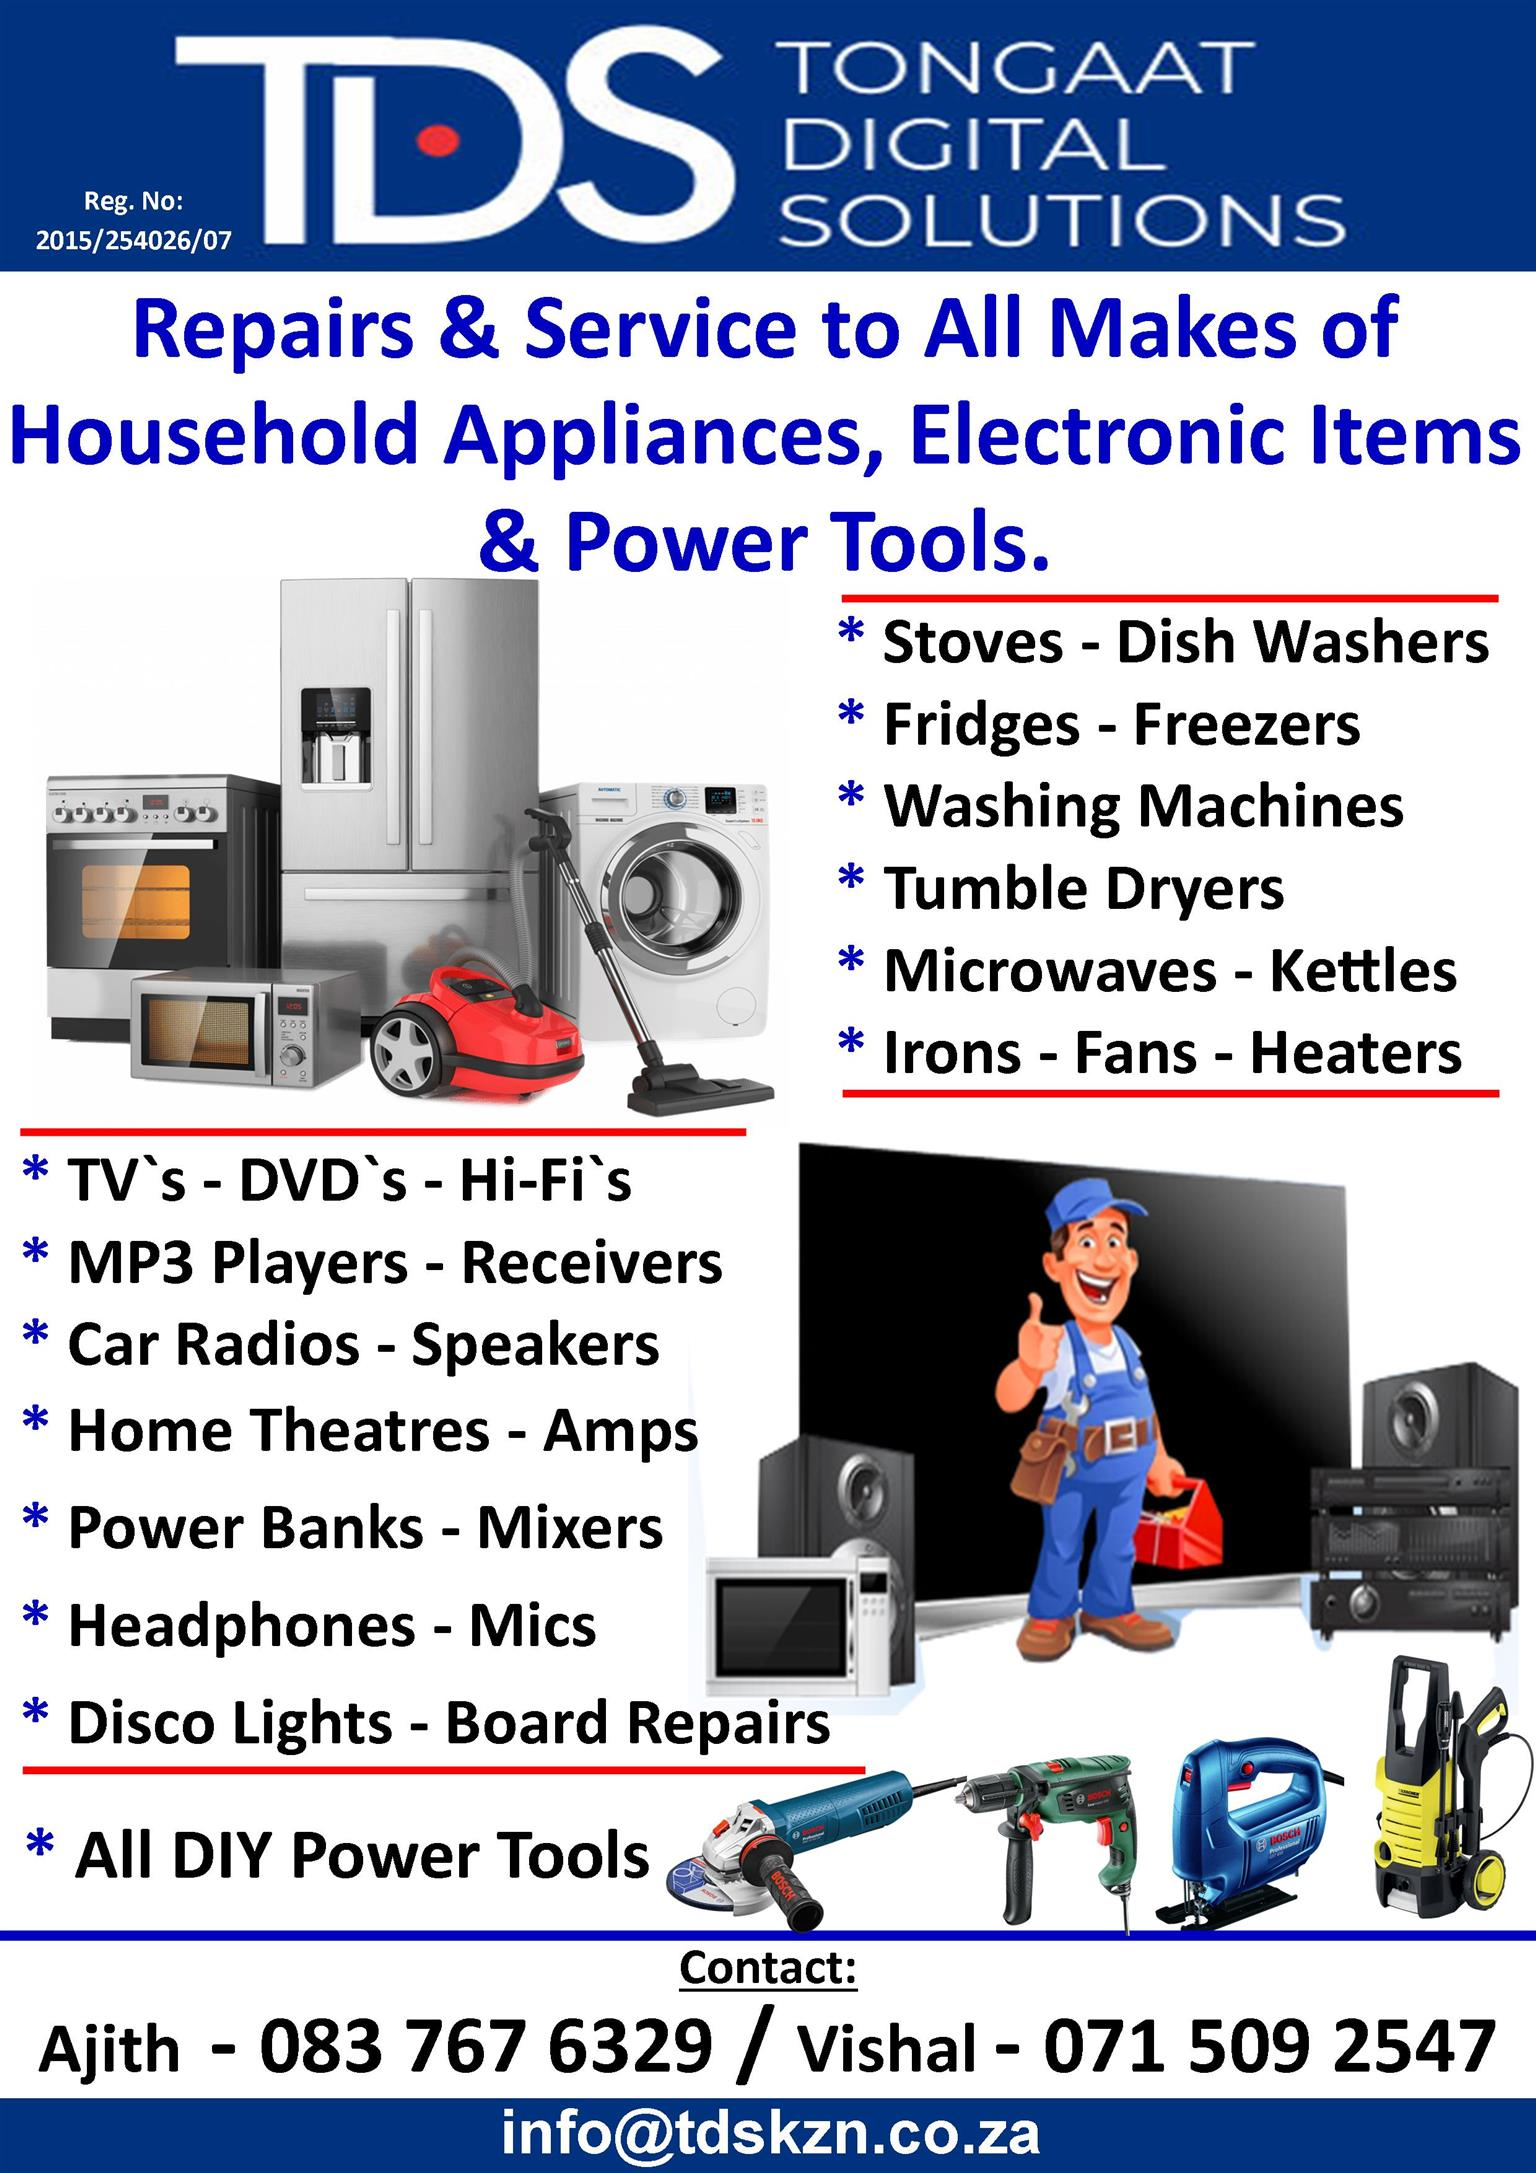 Repairs And Service to Household Appliances